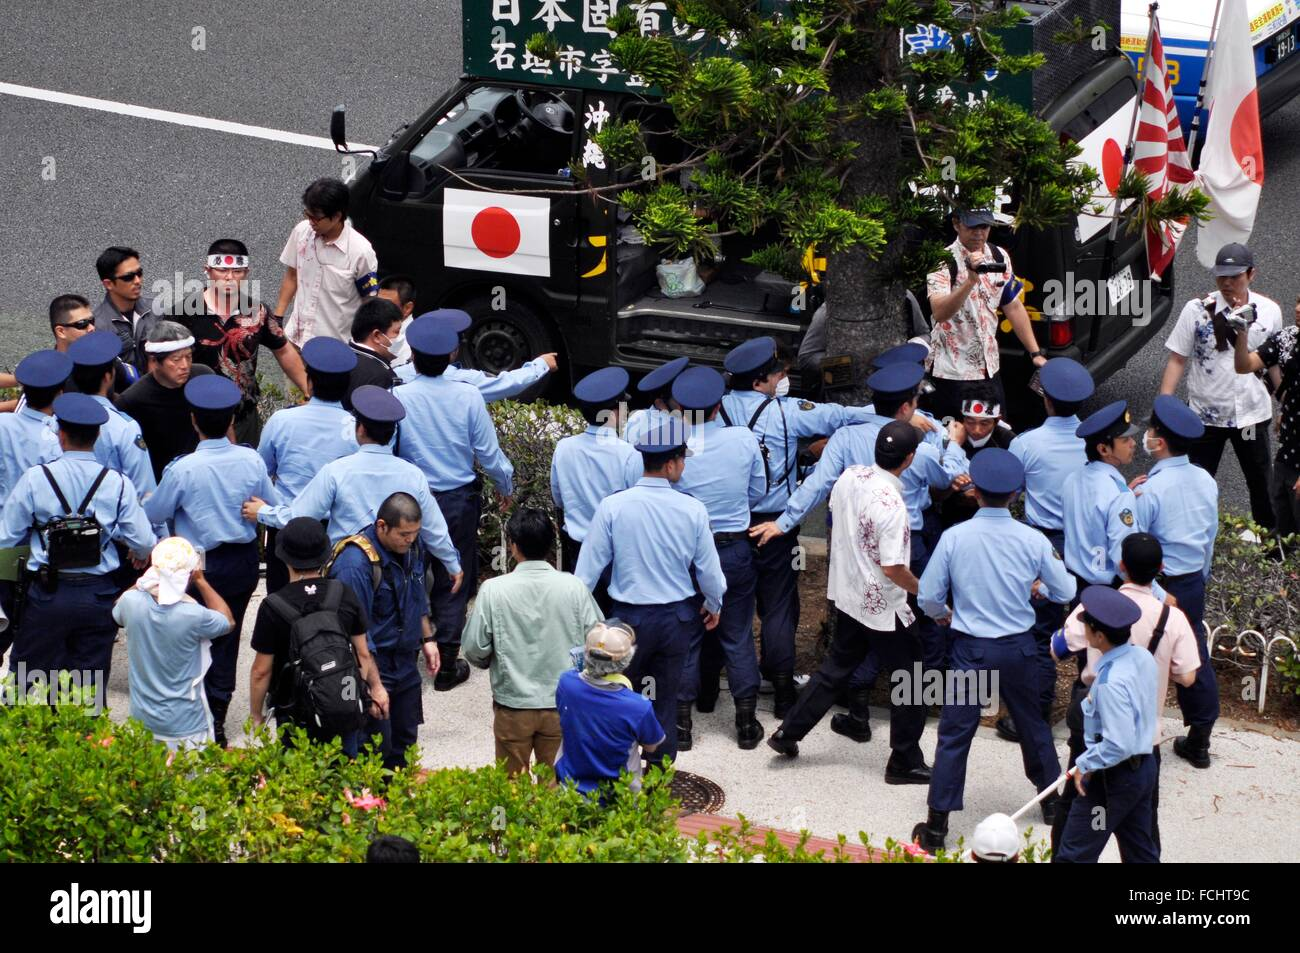 Naha, Okinawa, Japan: Japanese ultra-nationalists attacking pacifists by the Okinawa Cellular Stadium during the - Stock Image